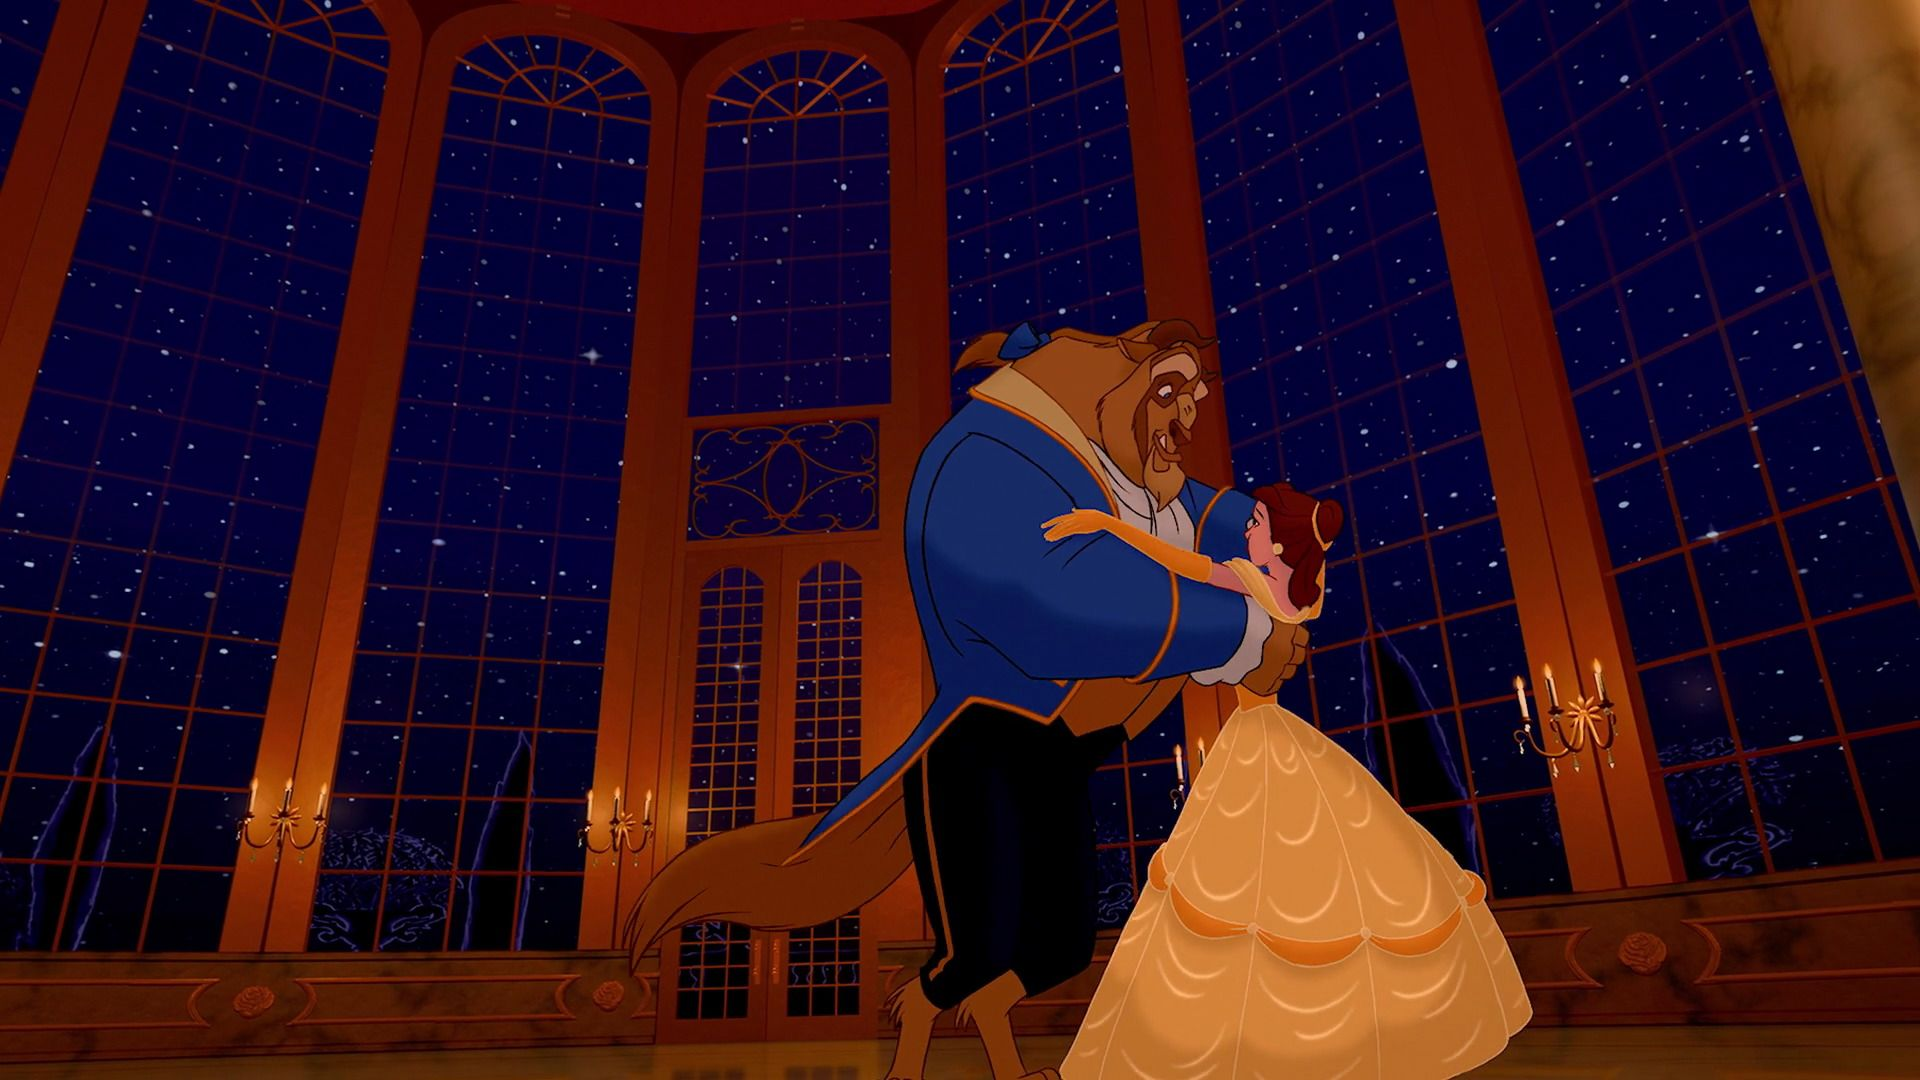 Belle And The Beast Dancing In The Ballroom In Tale As Old As Time